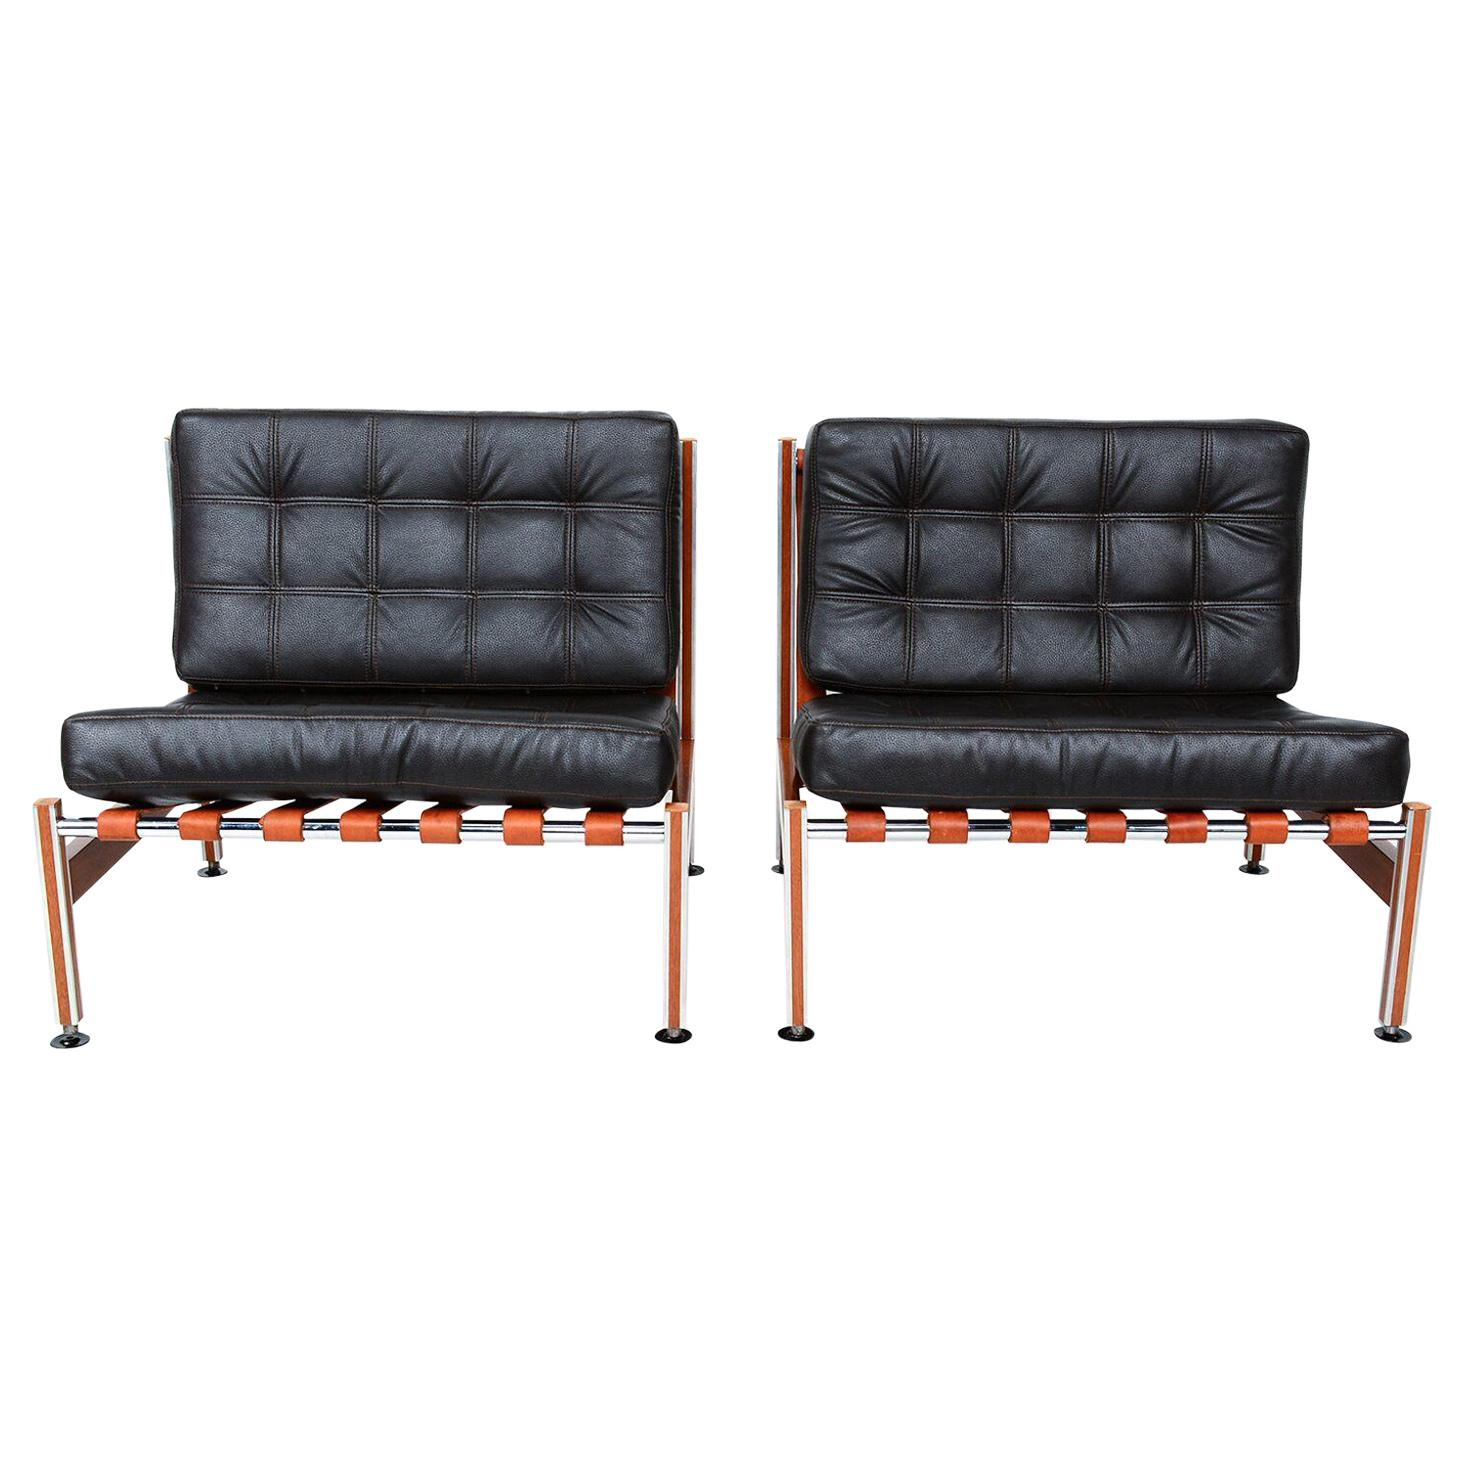 Black Leather & Mahogany Barcelona Style Lounge Chairs Mexican Modernism 1970s